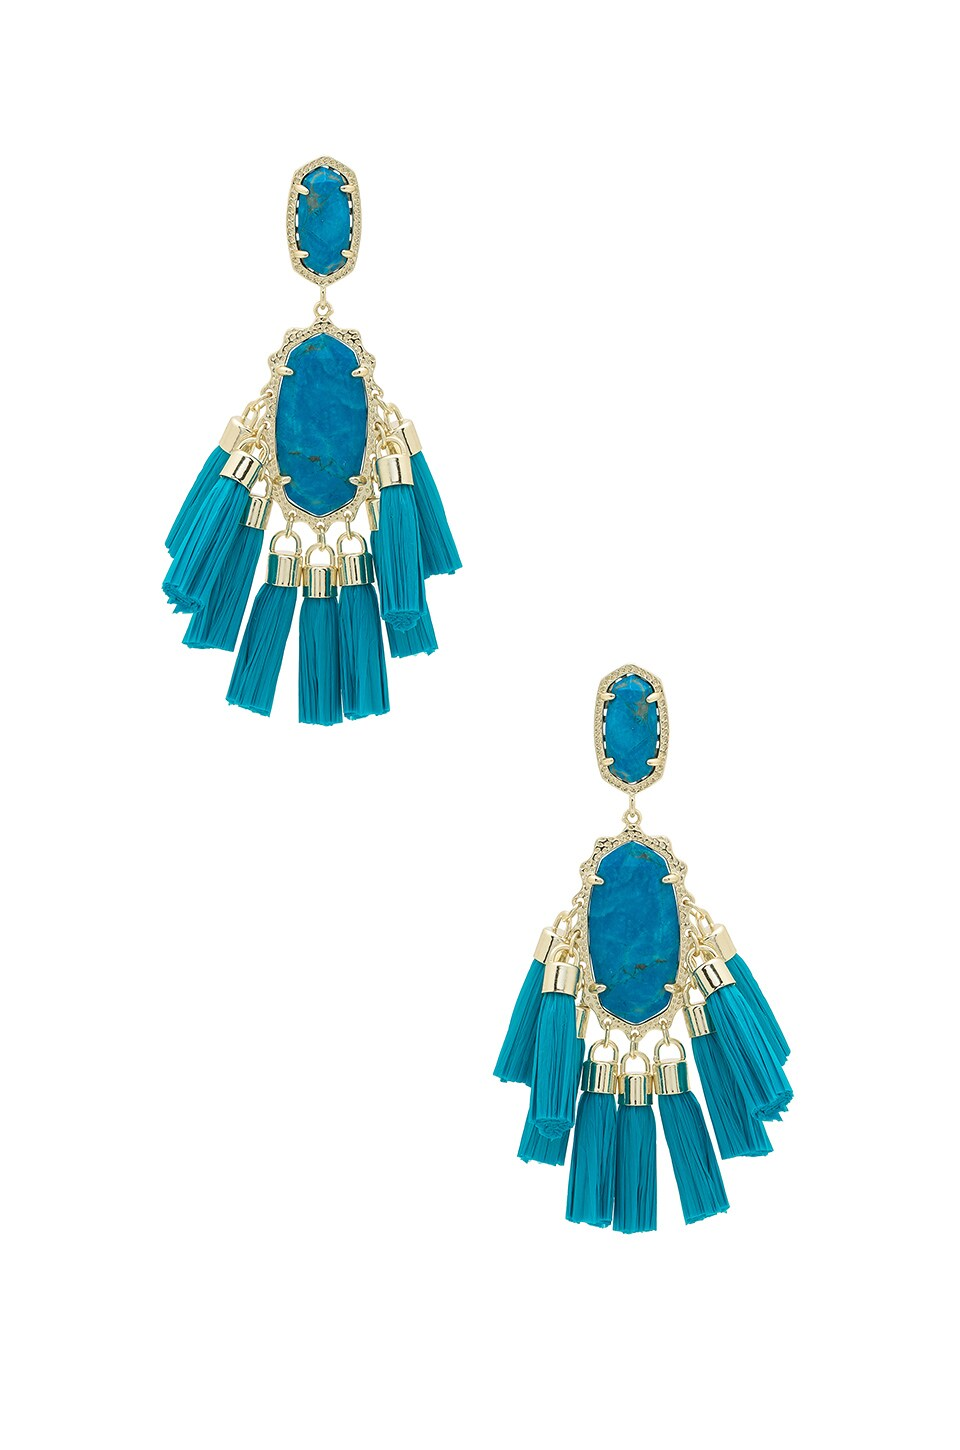 Kendra Scott Kristen Earrings in Gold & Aqua Howlite